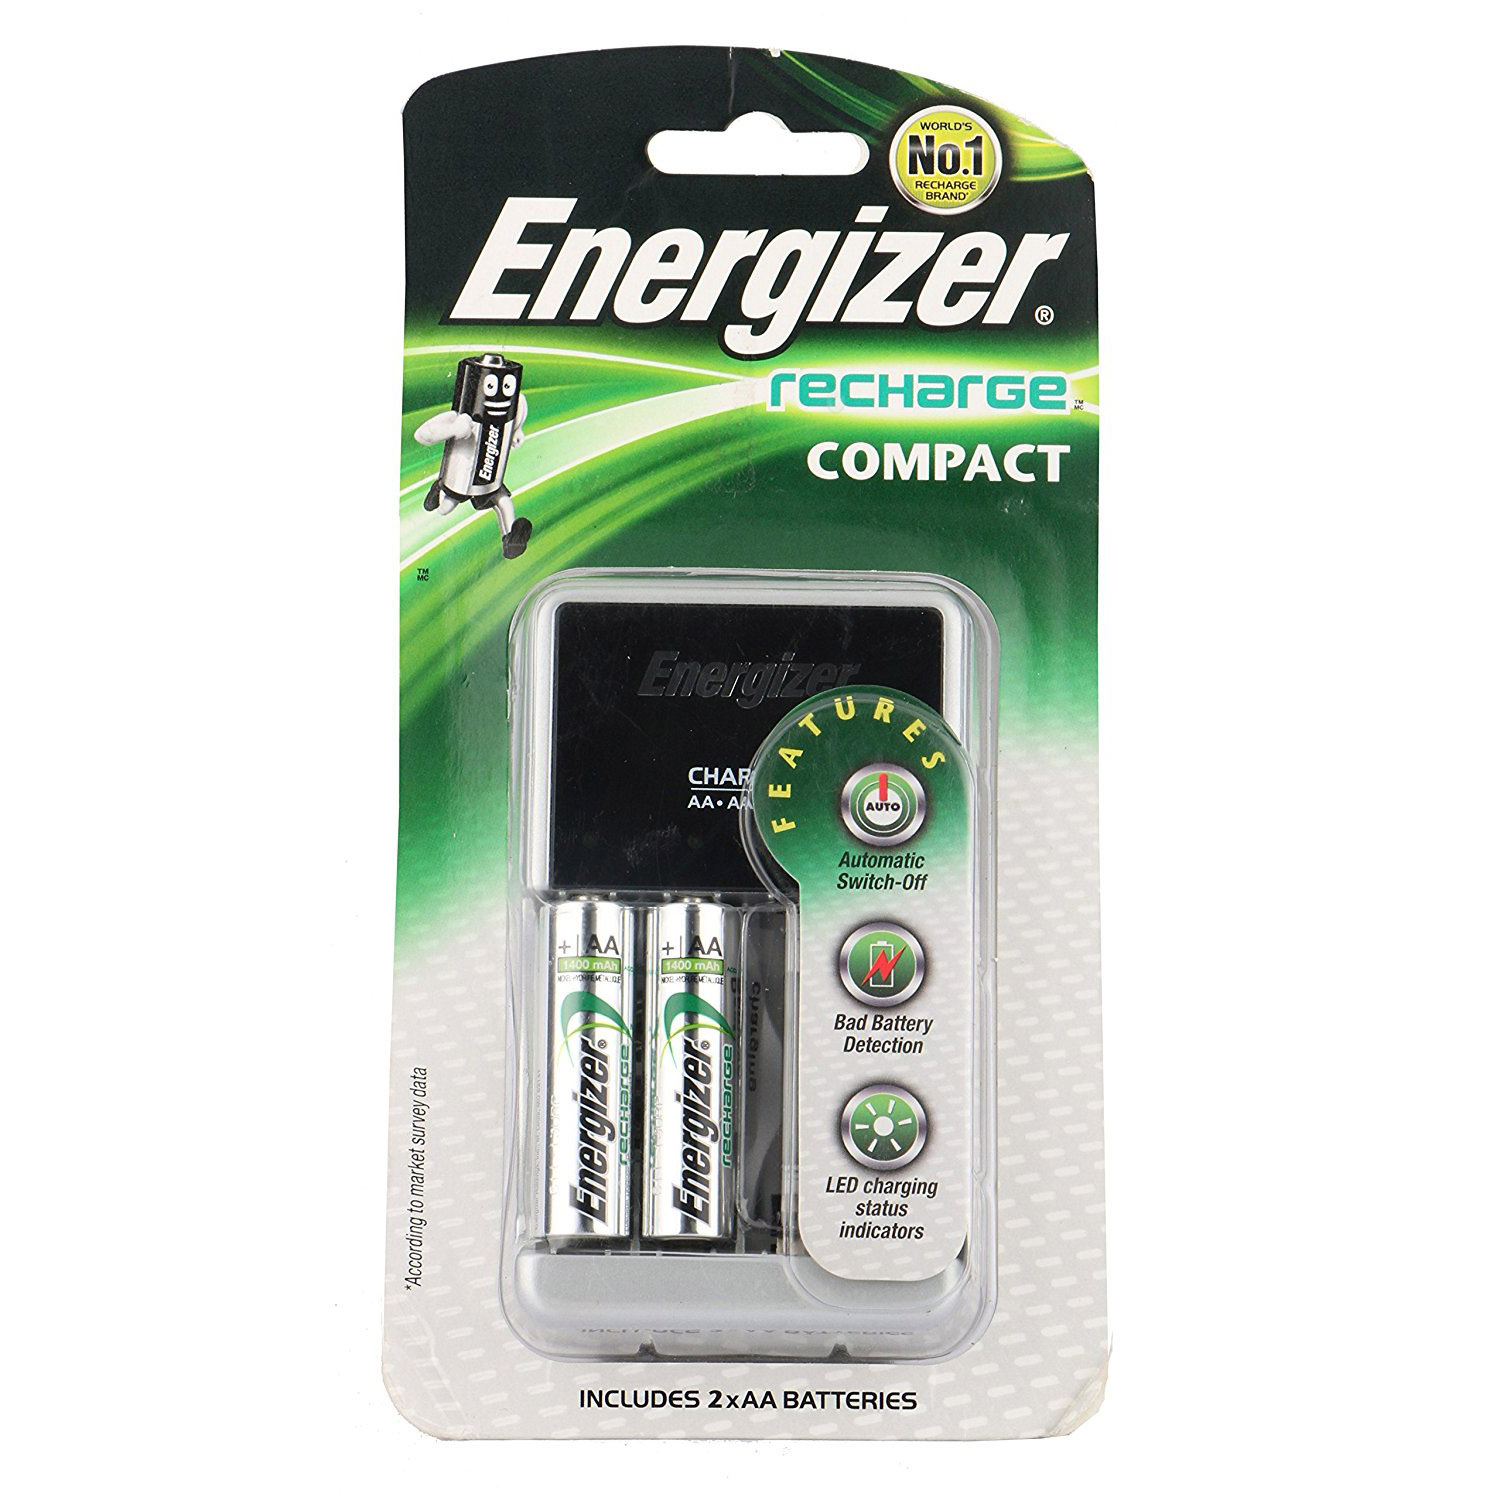 Energizer Compact Charger with 2 AA NiMH Rechargeable Battery - CHCCWB2 (pc)